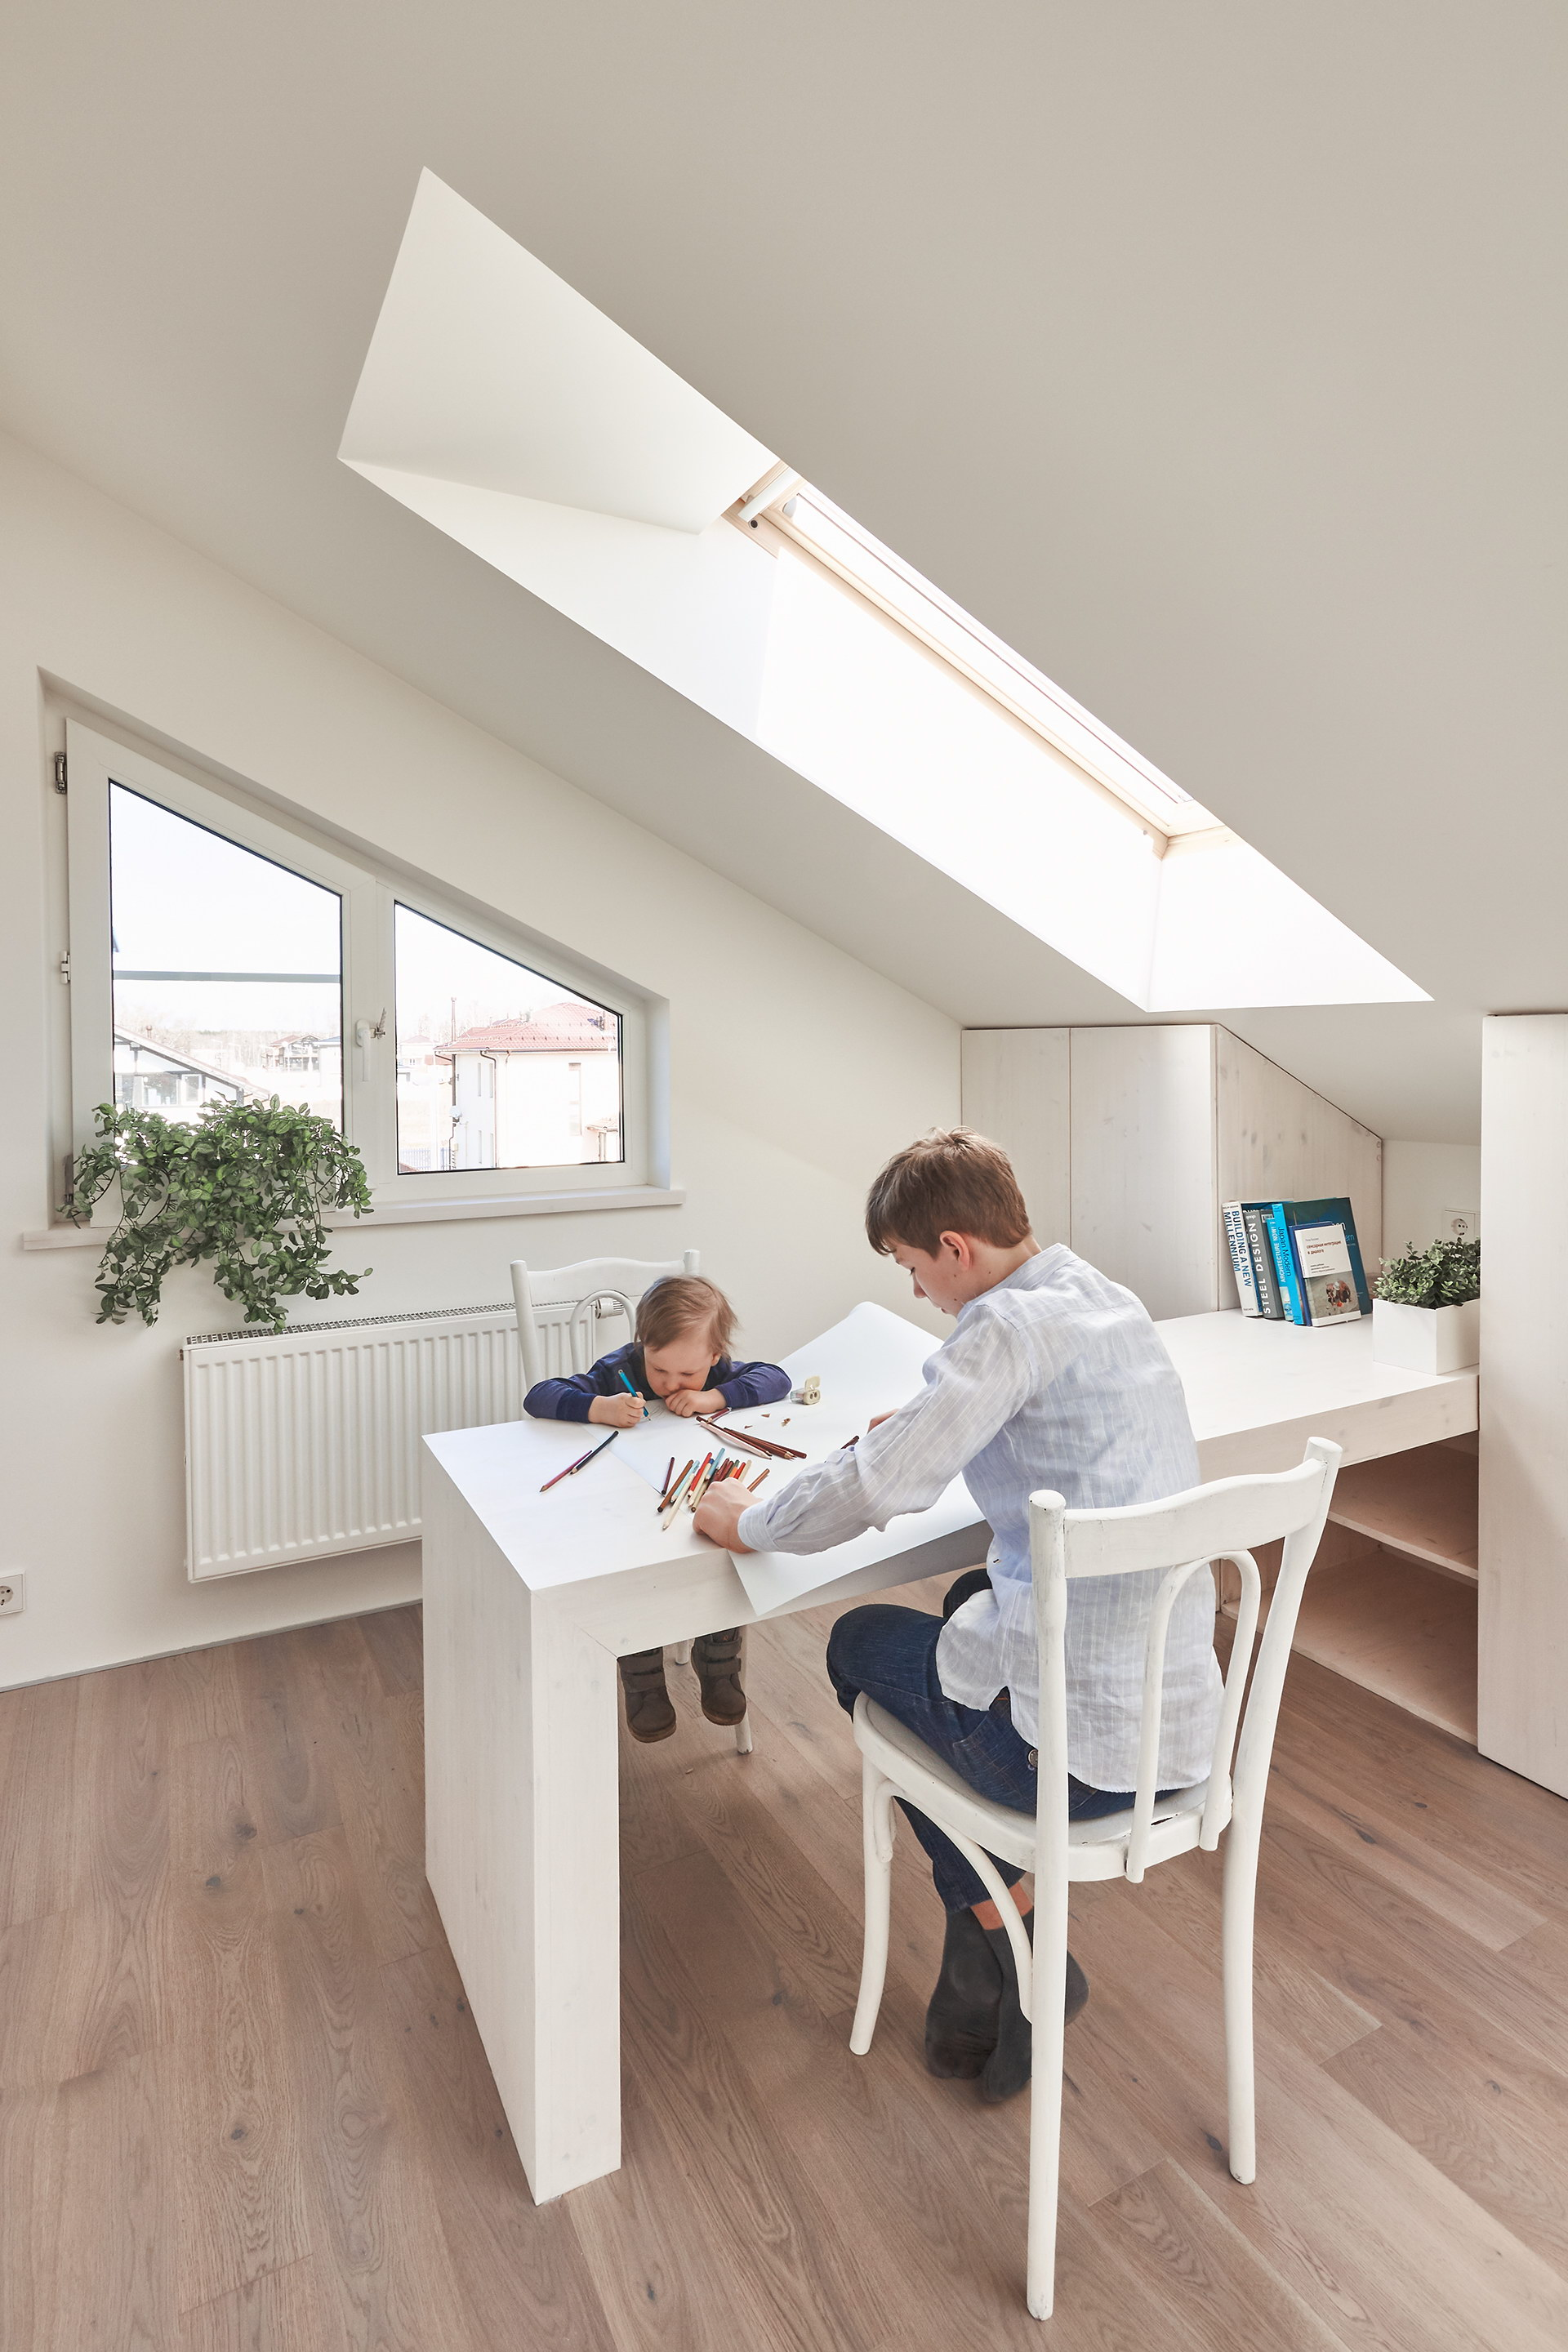 Family House Renovation by Ruetemple